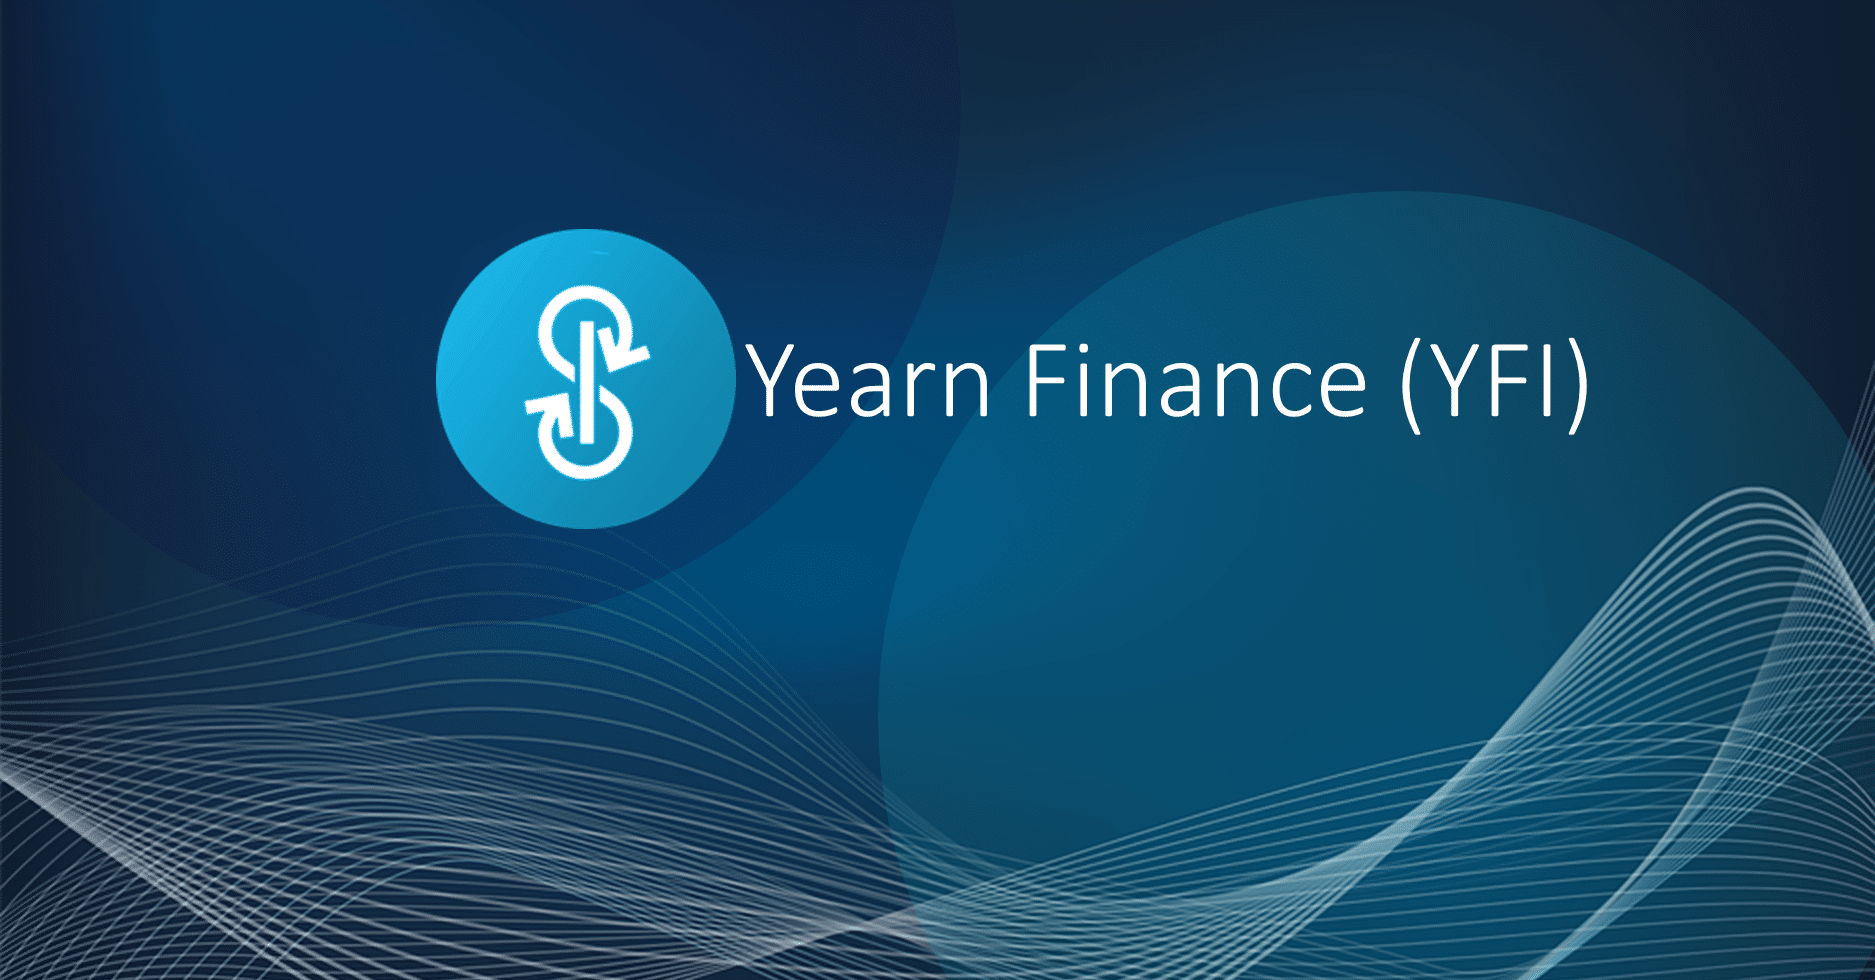 Yearn finance: what is it and how does the YFI coin work?